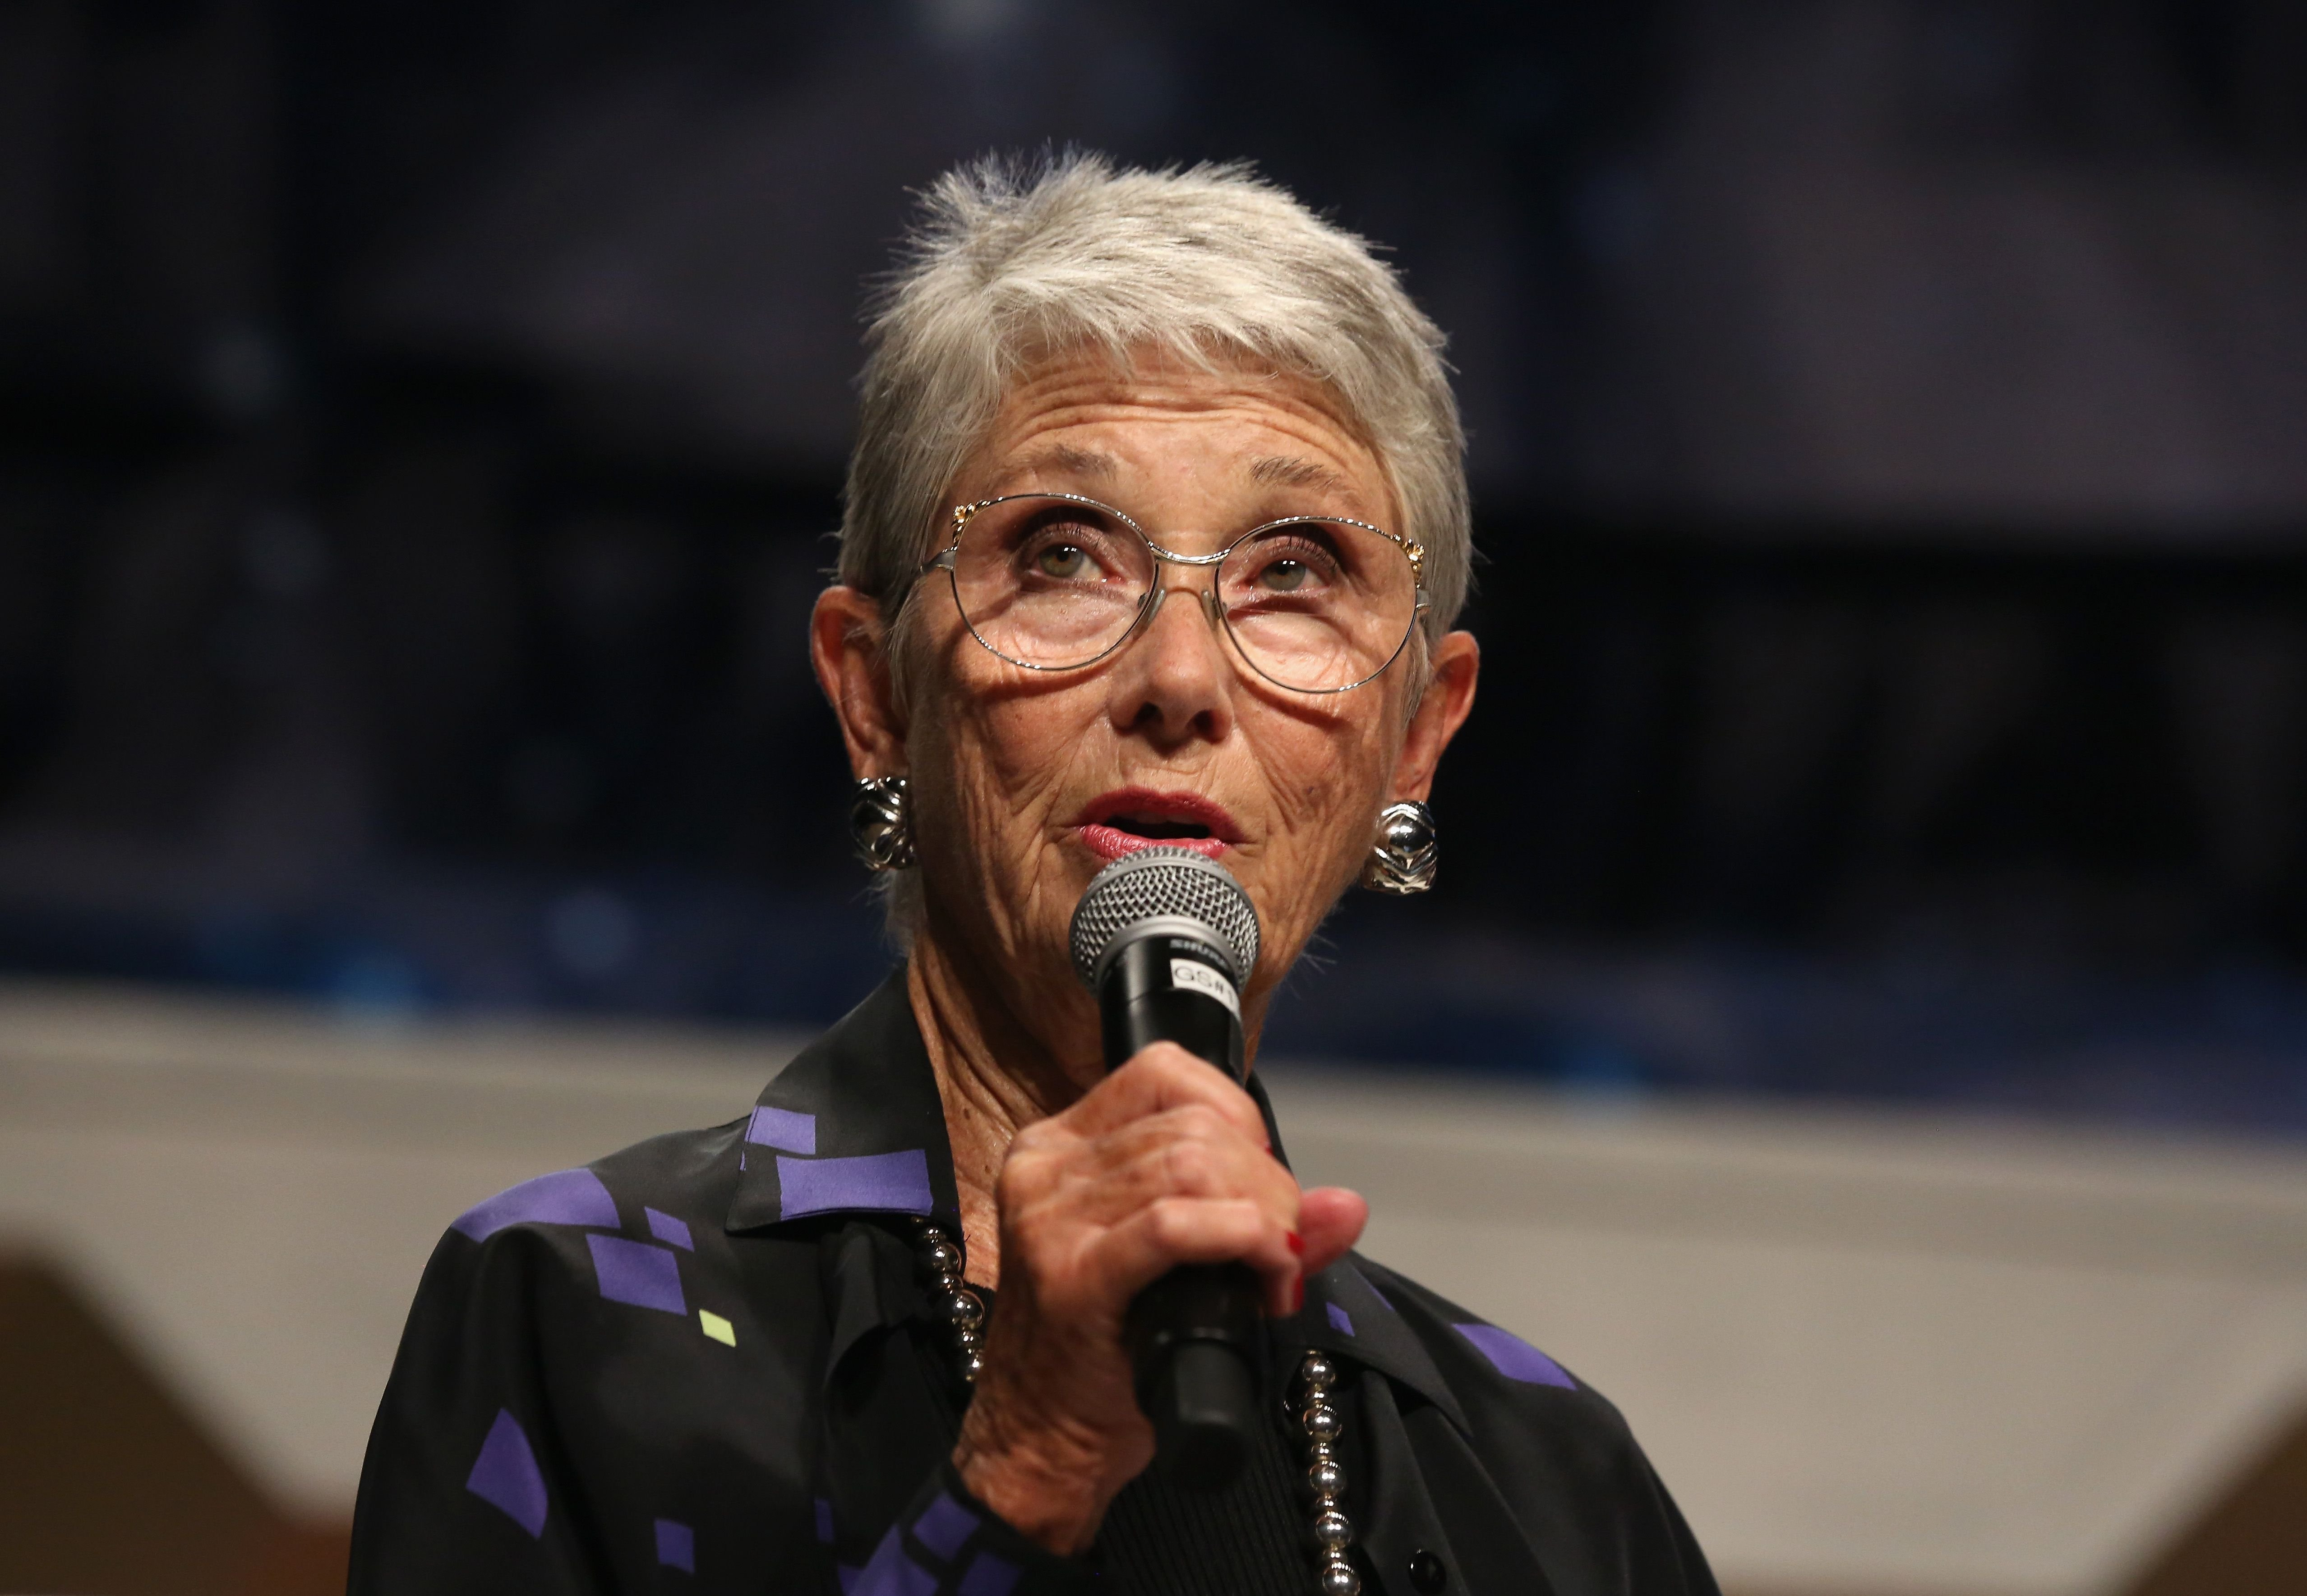 """Actress Elinor Donahue spoke at the """"Amazing Talents That Have Graced Star Trek"""" panel on August 3, 2016 